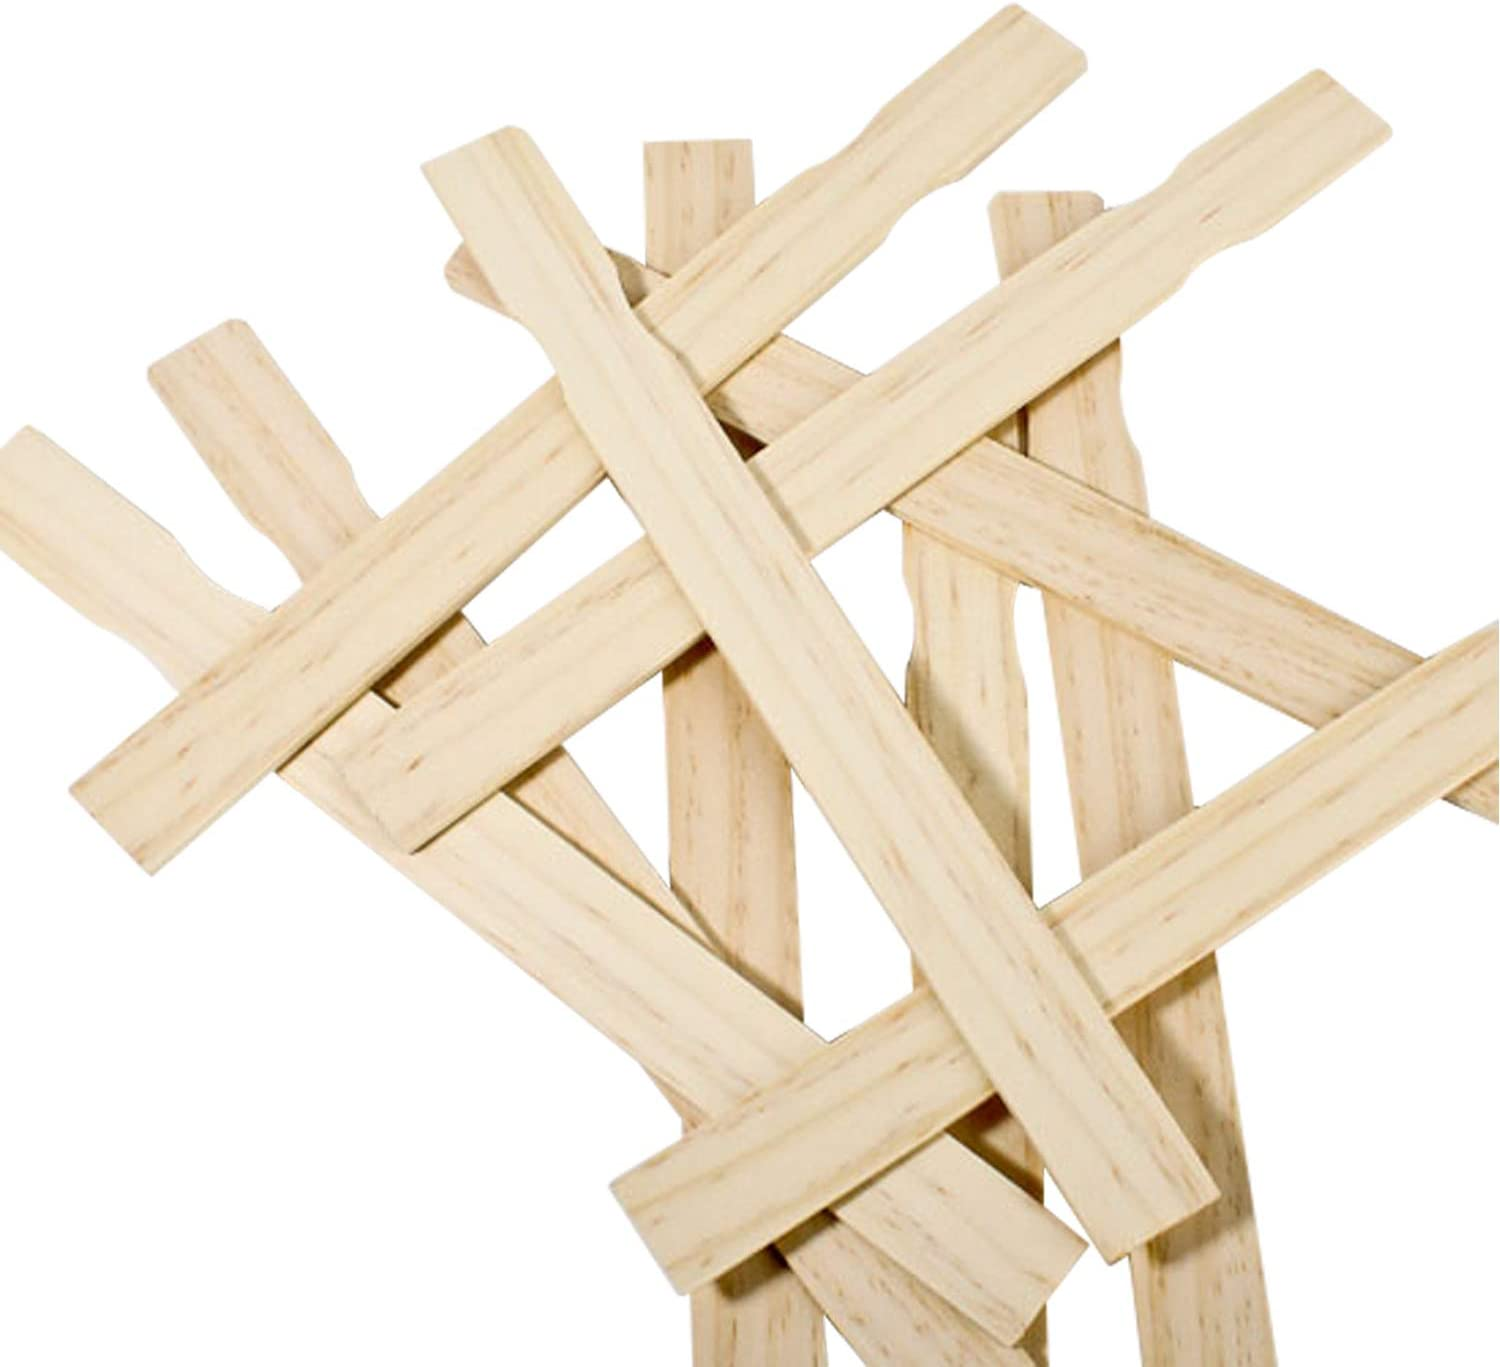 Garden Box of 100-12 Inch Premium Grade Splinter Free Woodman Crafts Paint Stir Sticks Ideal For DIY Wood Craft Projects Pack of 100 Library Paddle To Mix Epoxy Or Paint